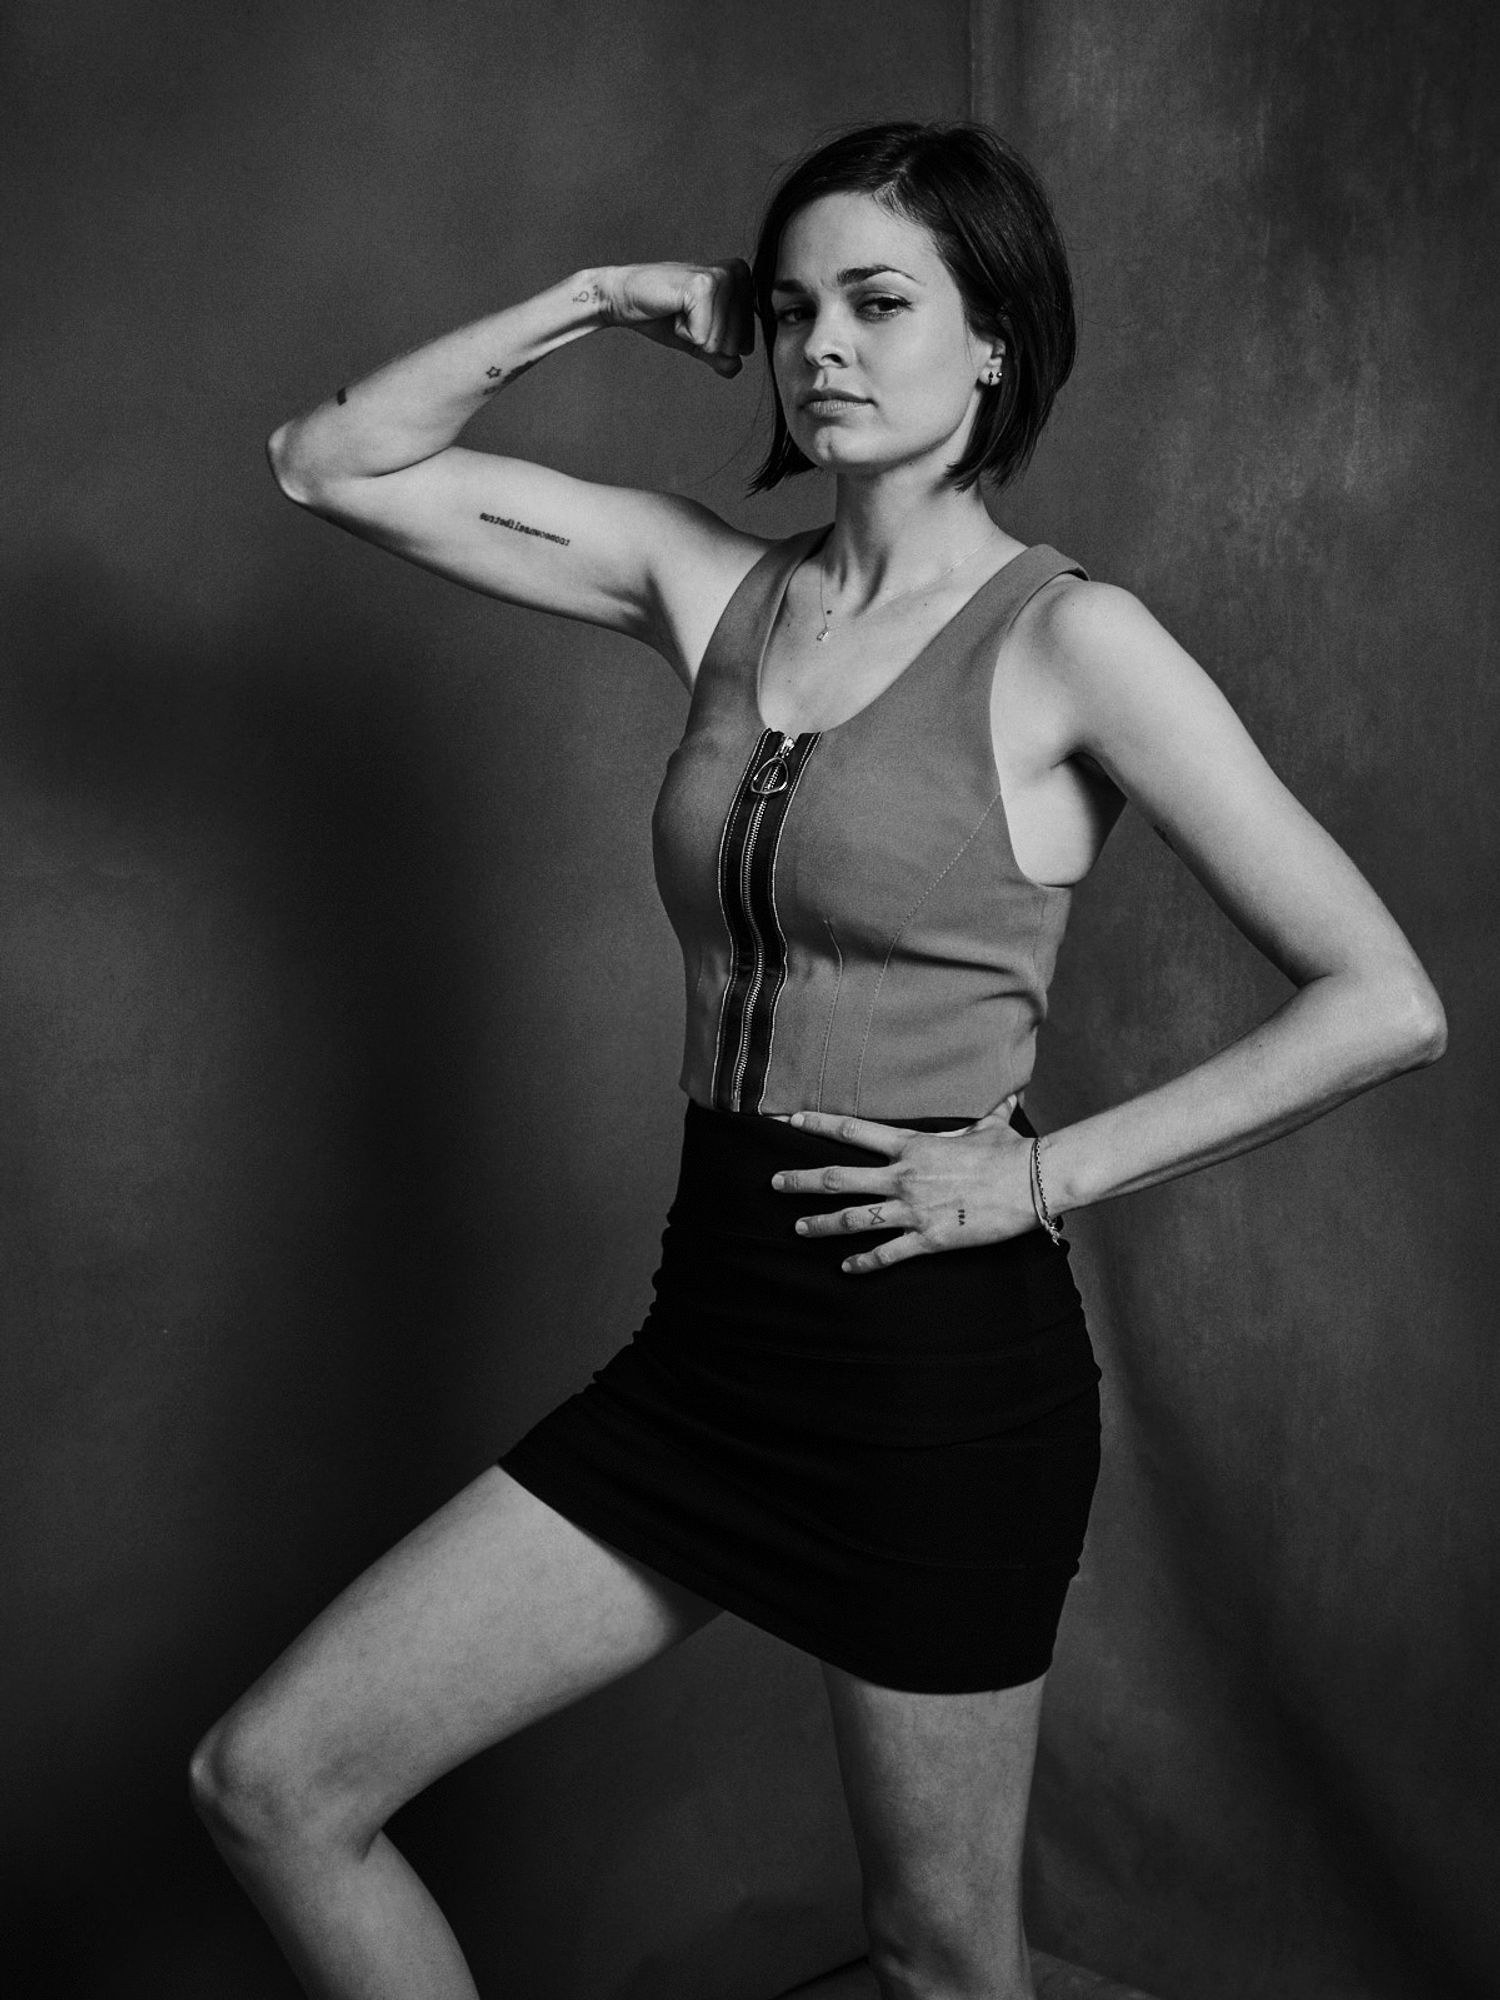 Lina Esco of S.W.A.T. flexing her muscles.